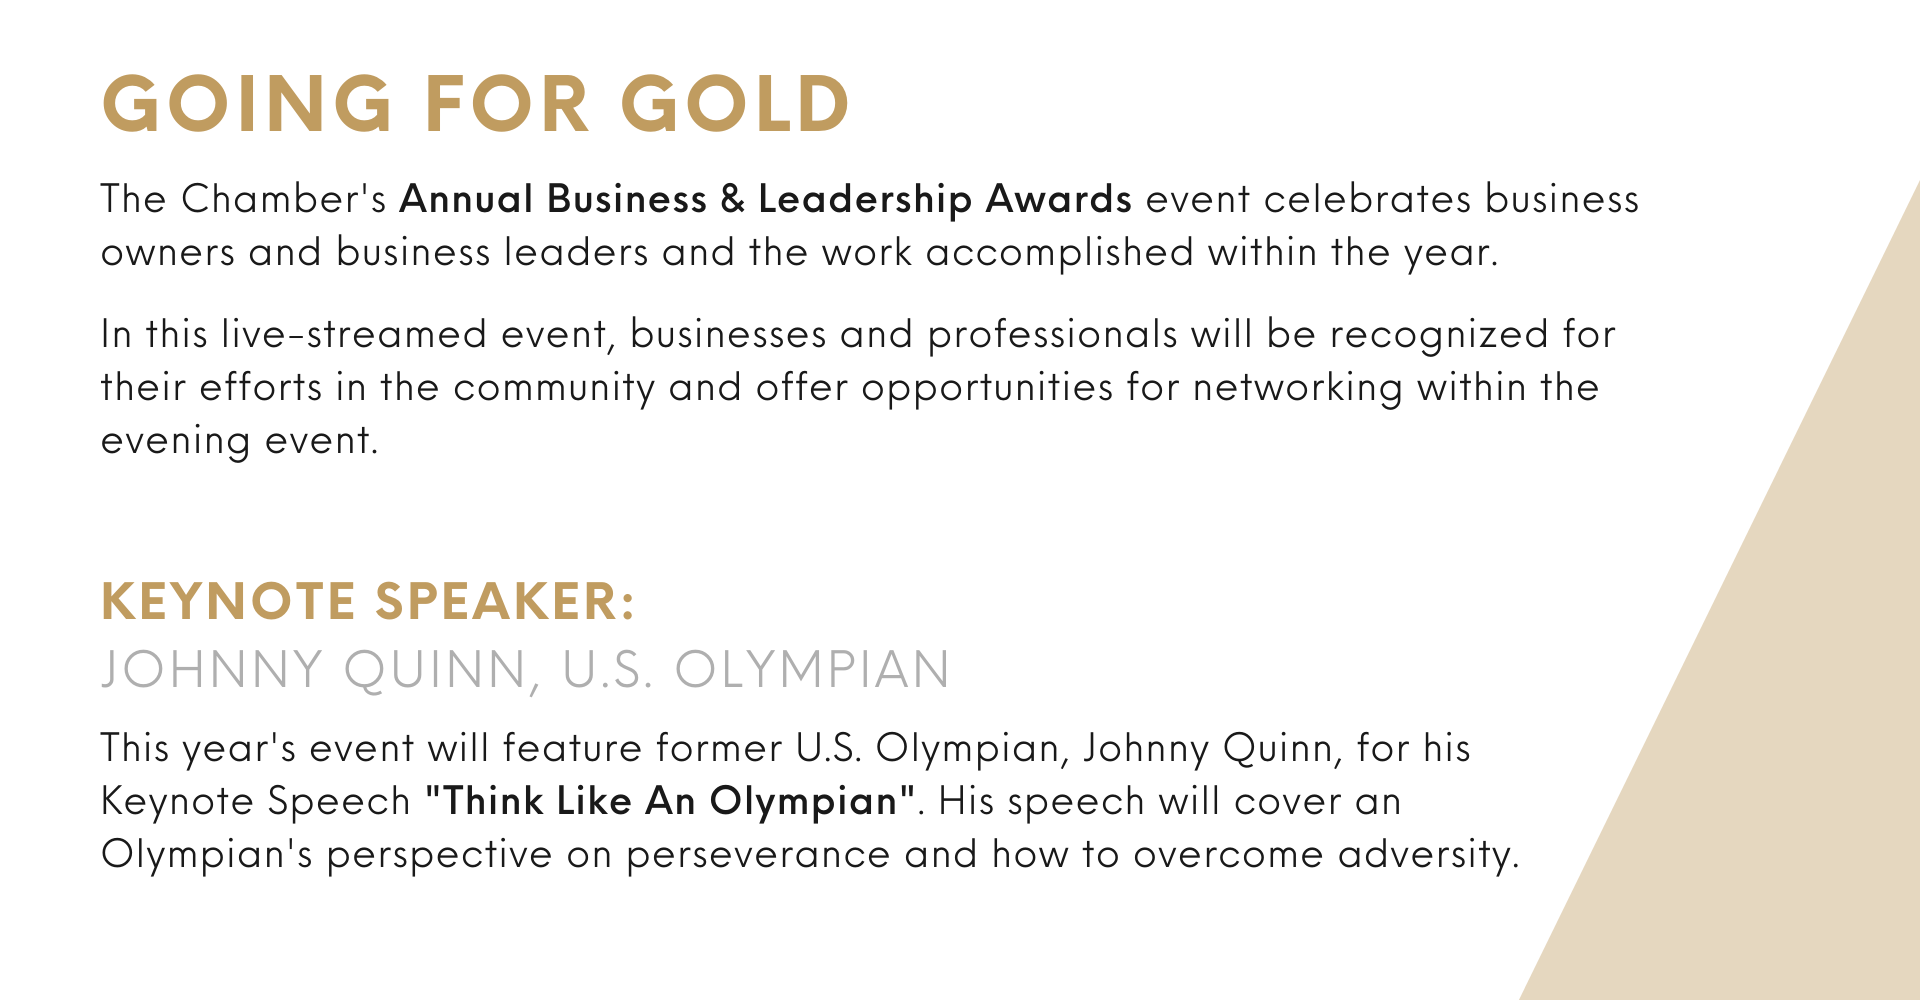 """Keynote speaker: Johnny quinn, u.s. olympian This year's event will feature former U.S. Olympian, Johnny Quinn, for his Keynote Speech """"Think Like An Olympian"""". His speech will cover an Olympian's perspective on perseverance and how to overcome adversity. The Chamber's Annual Business & Leadership Awards event celebrates business owners and business leaders and the work accomplished within the year.  In this live-streamed event, businesses and professionals will be recognized for their efforts in the community and offer opportunities for networking within the evening event. going for gold"""